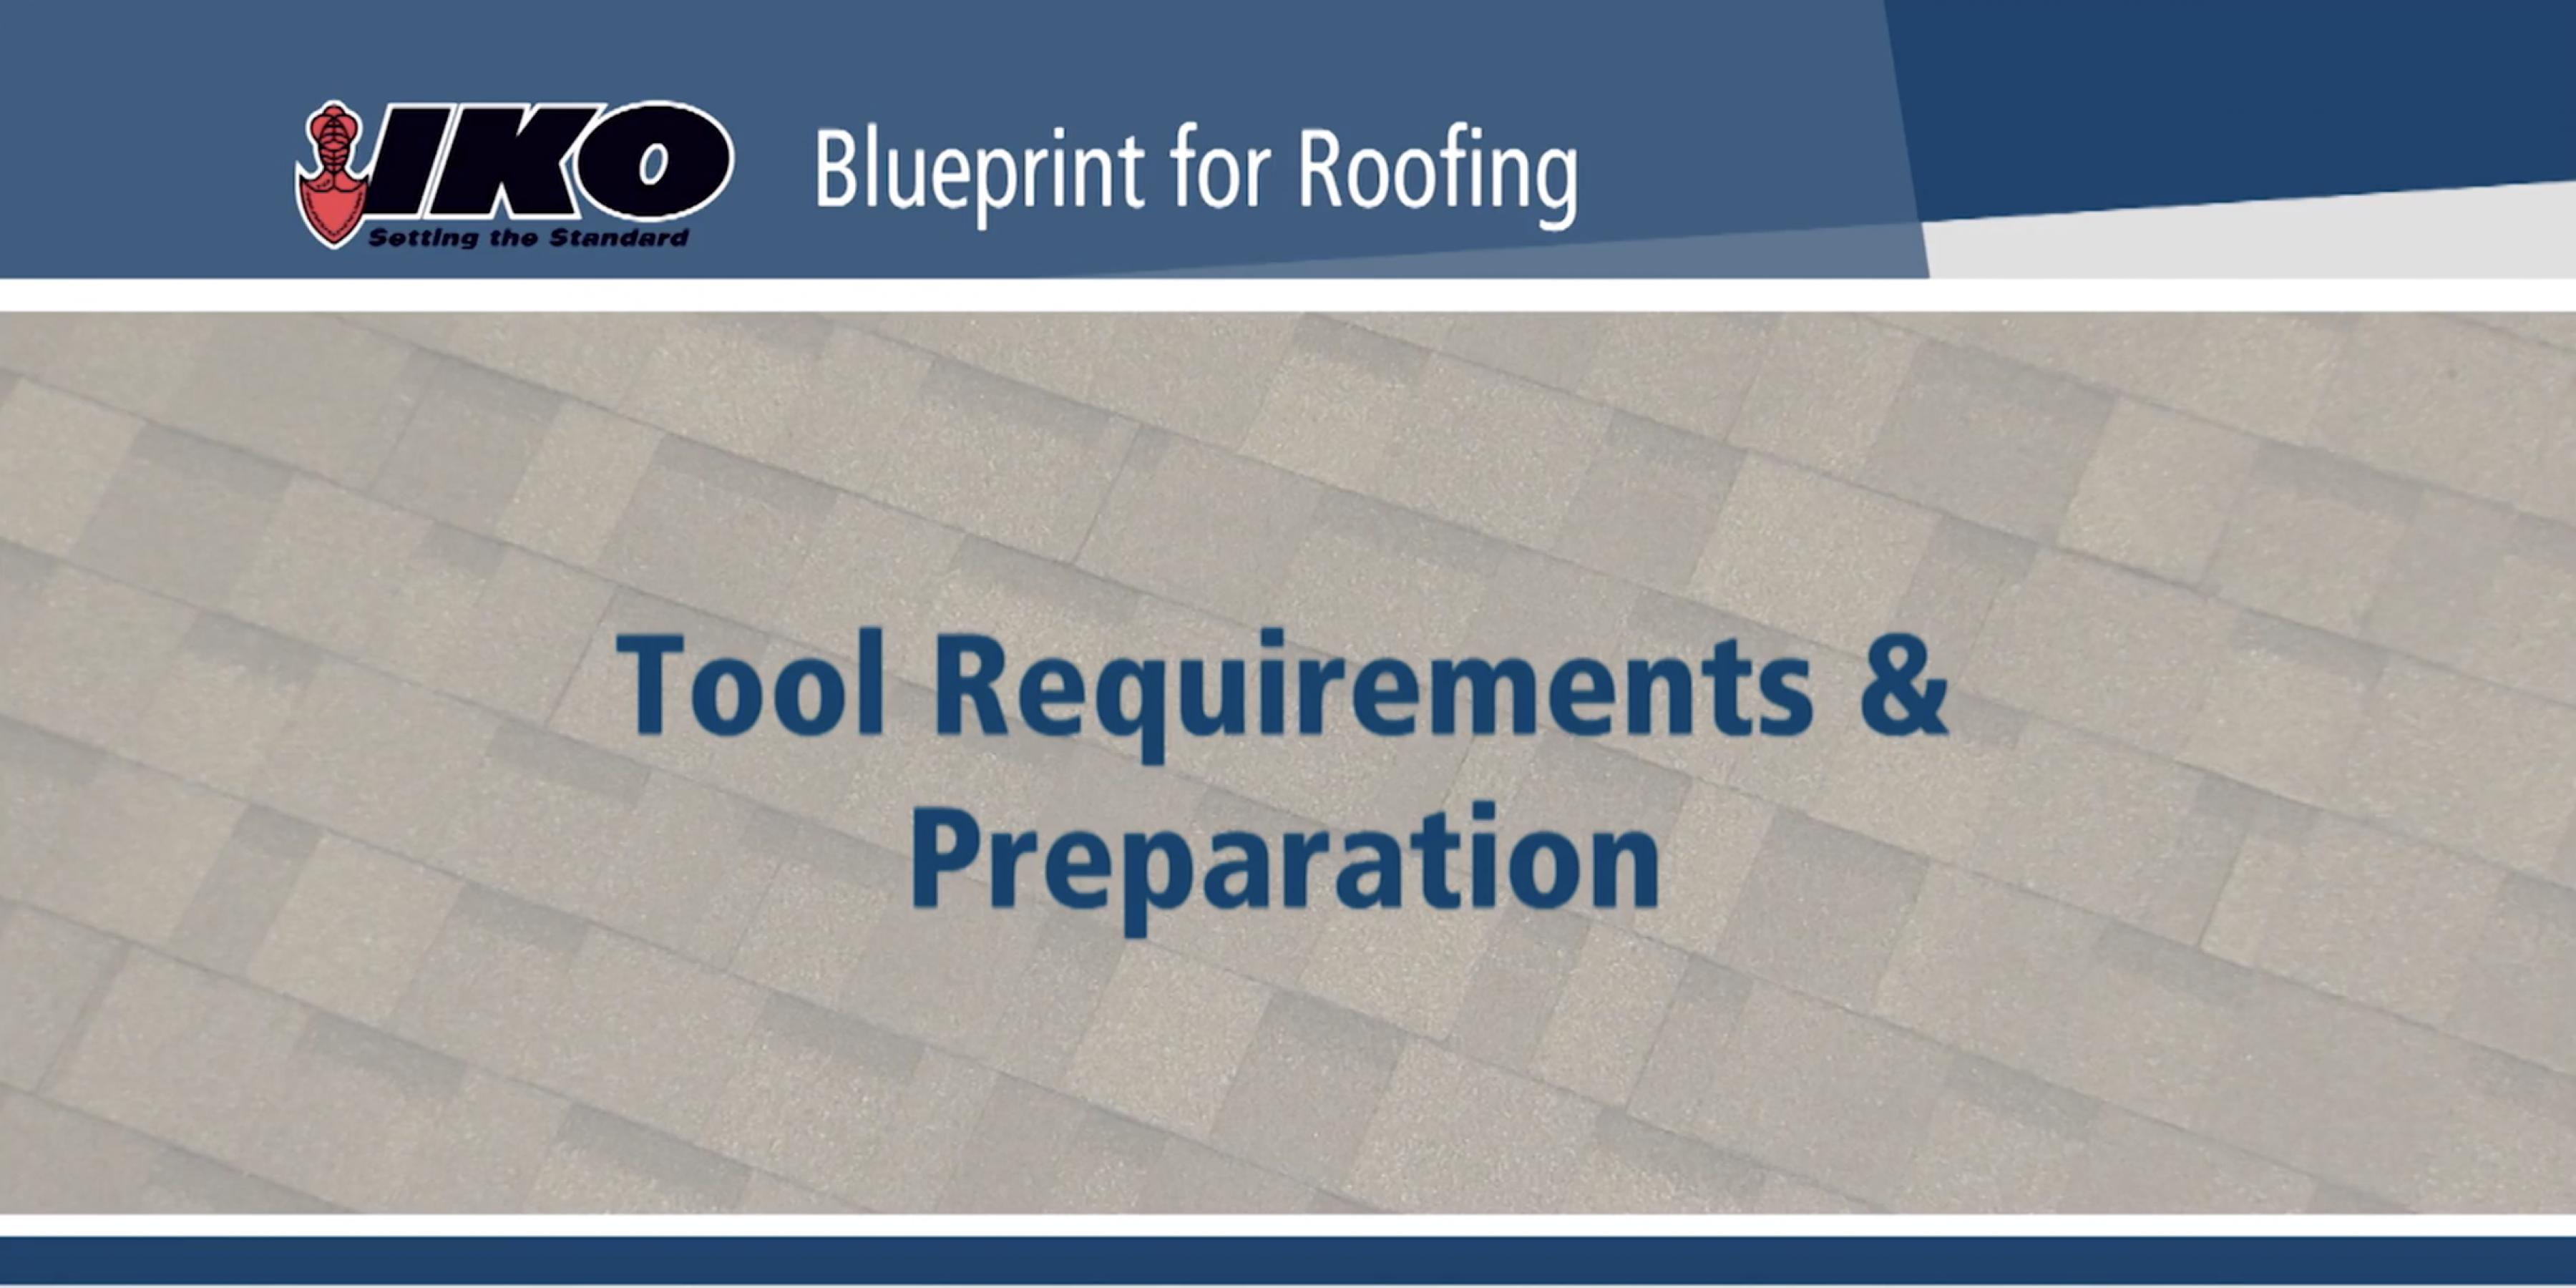 Tool Requirements and Preparation